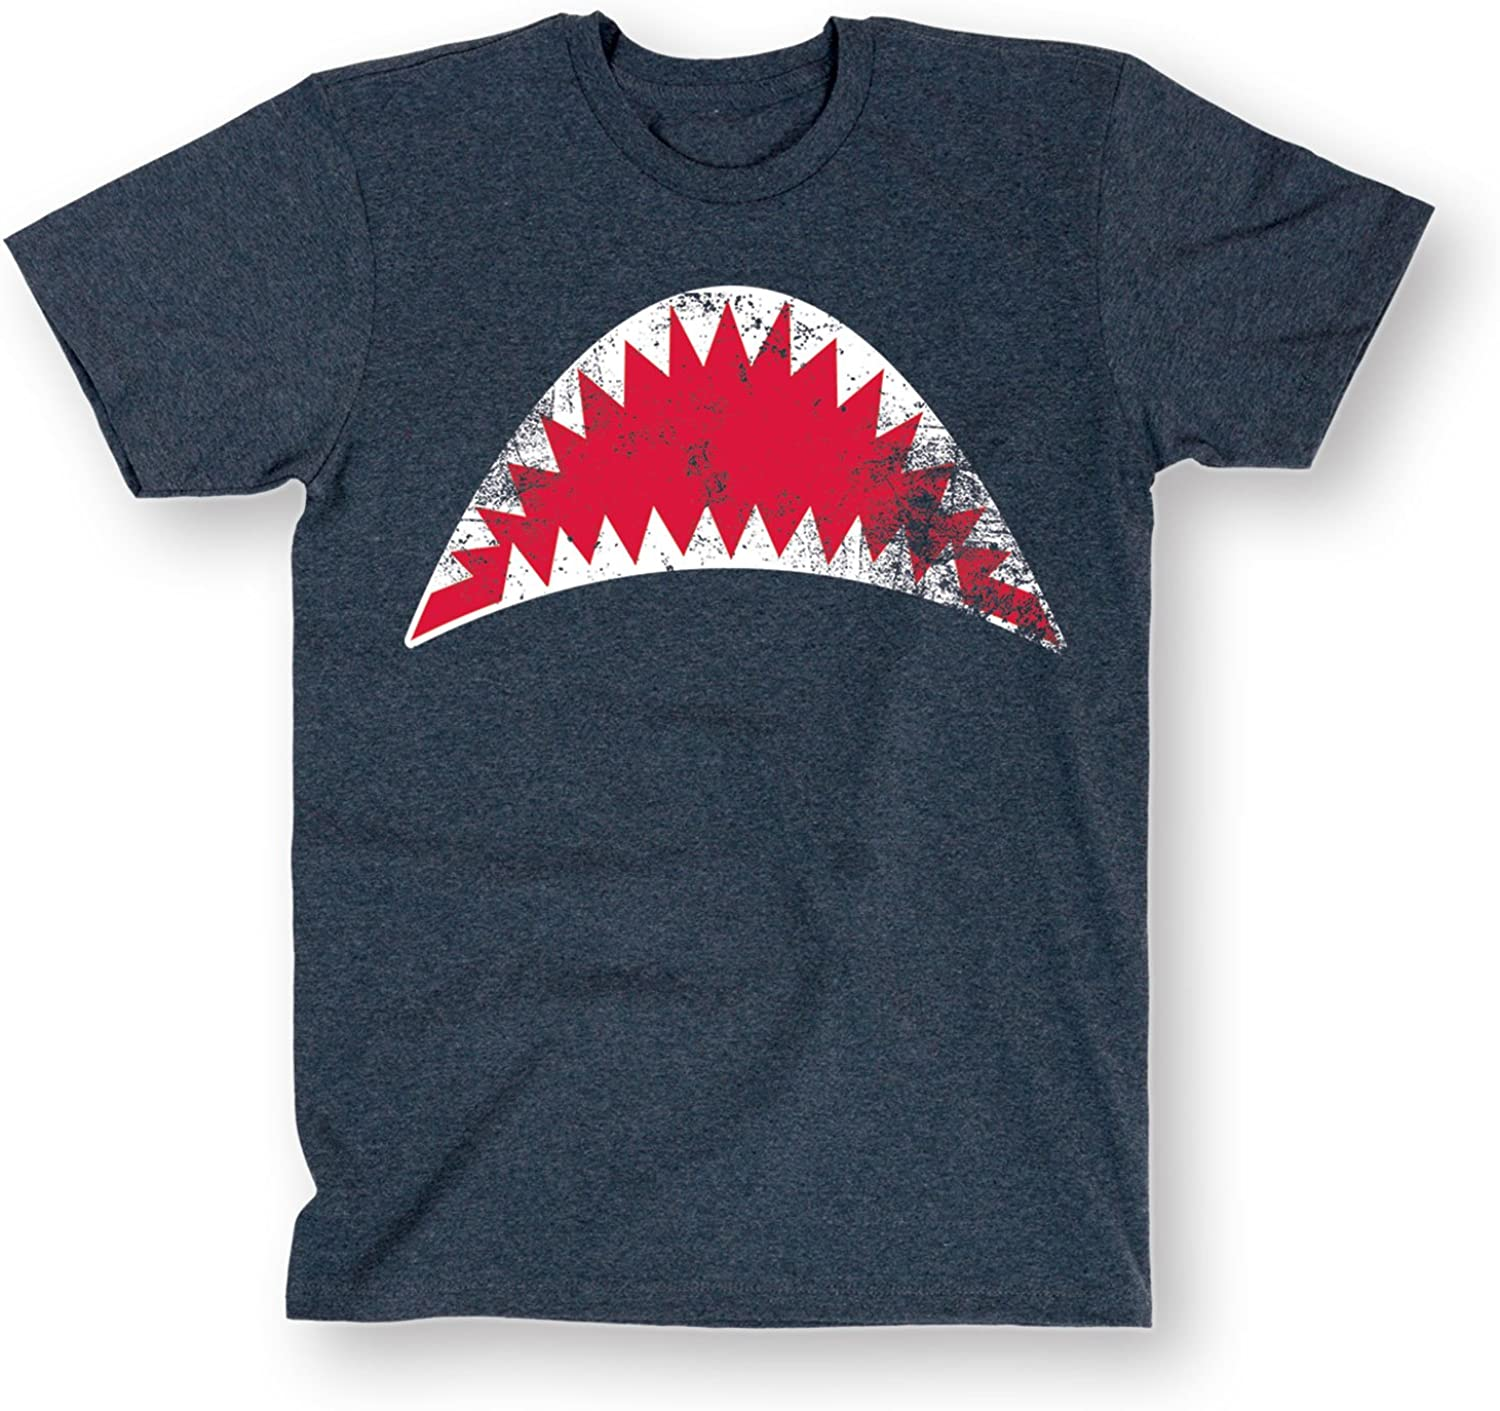 Blue Open Mouth Shark Jaws Mens T-Shirt-Shark Teeth Short Sleeve Tee